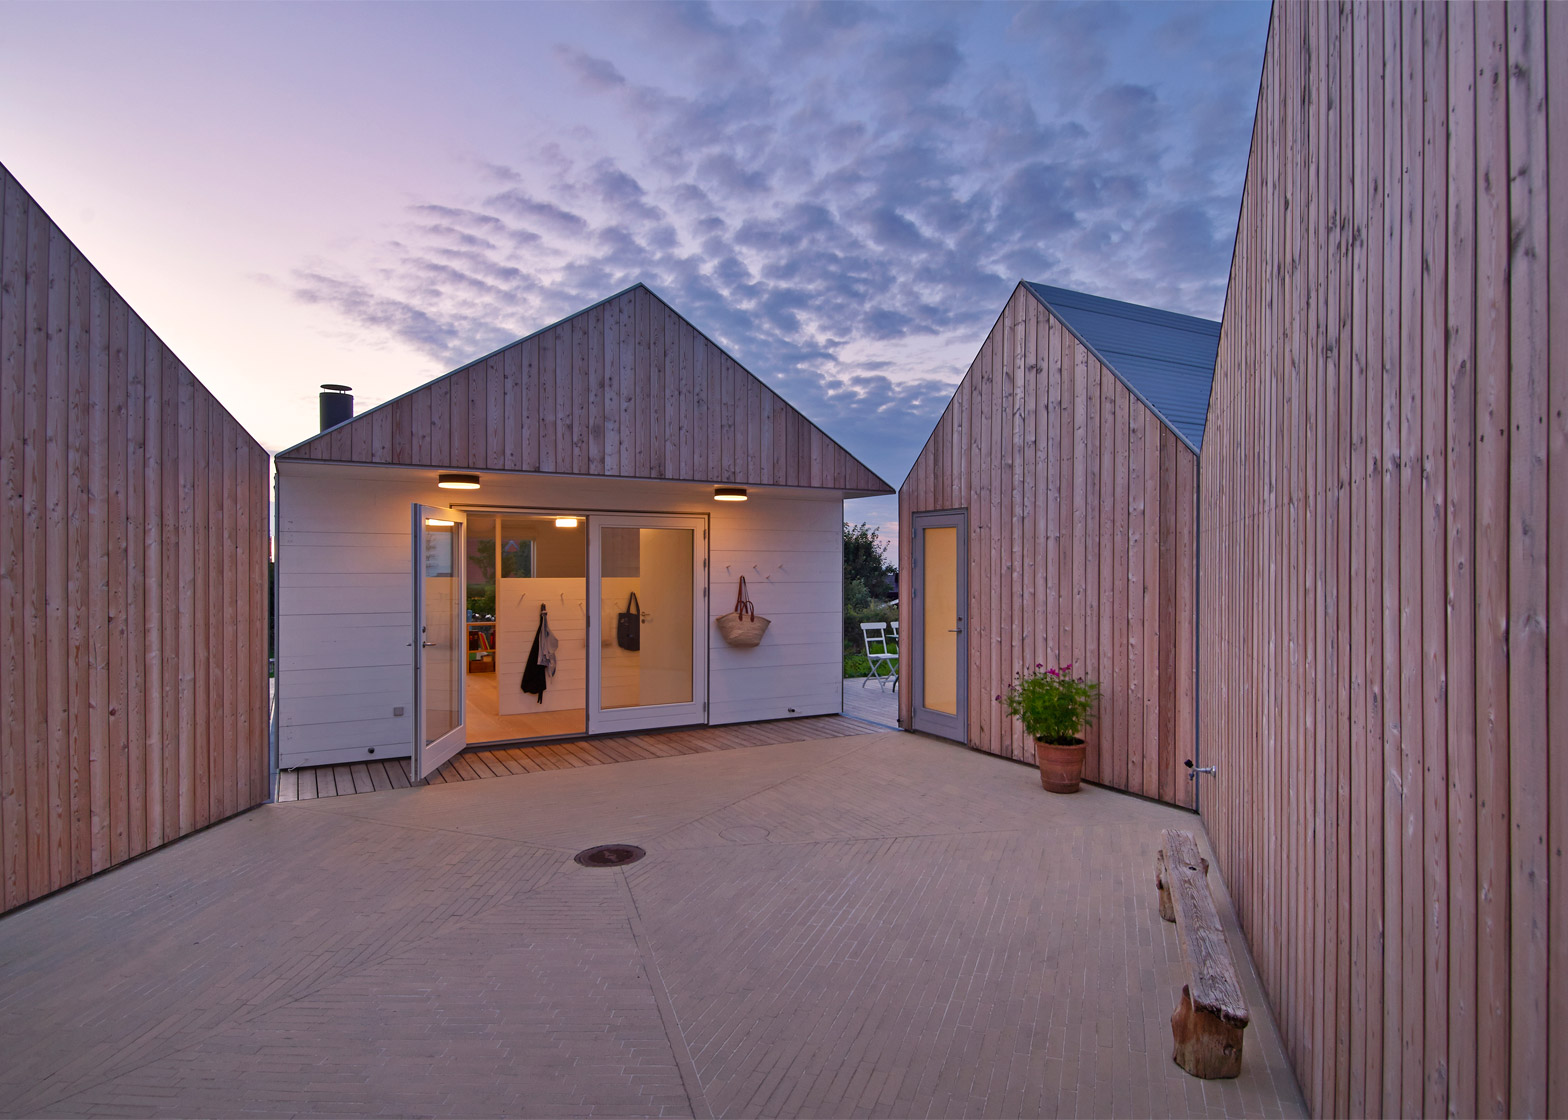 Summer House in Denmark by Jarmund/Vigsnæs Arkitekter